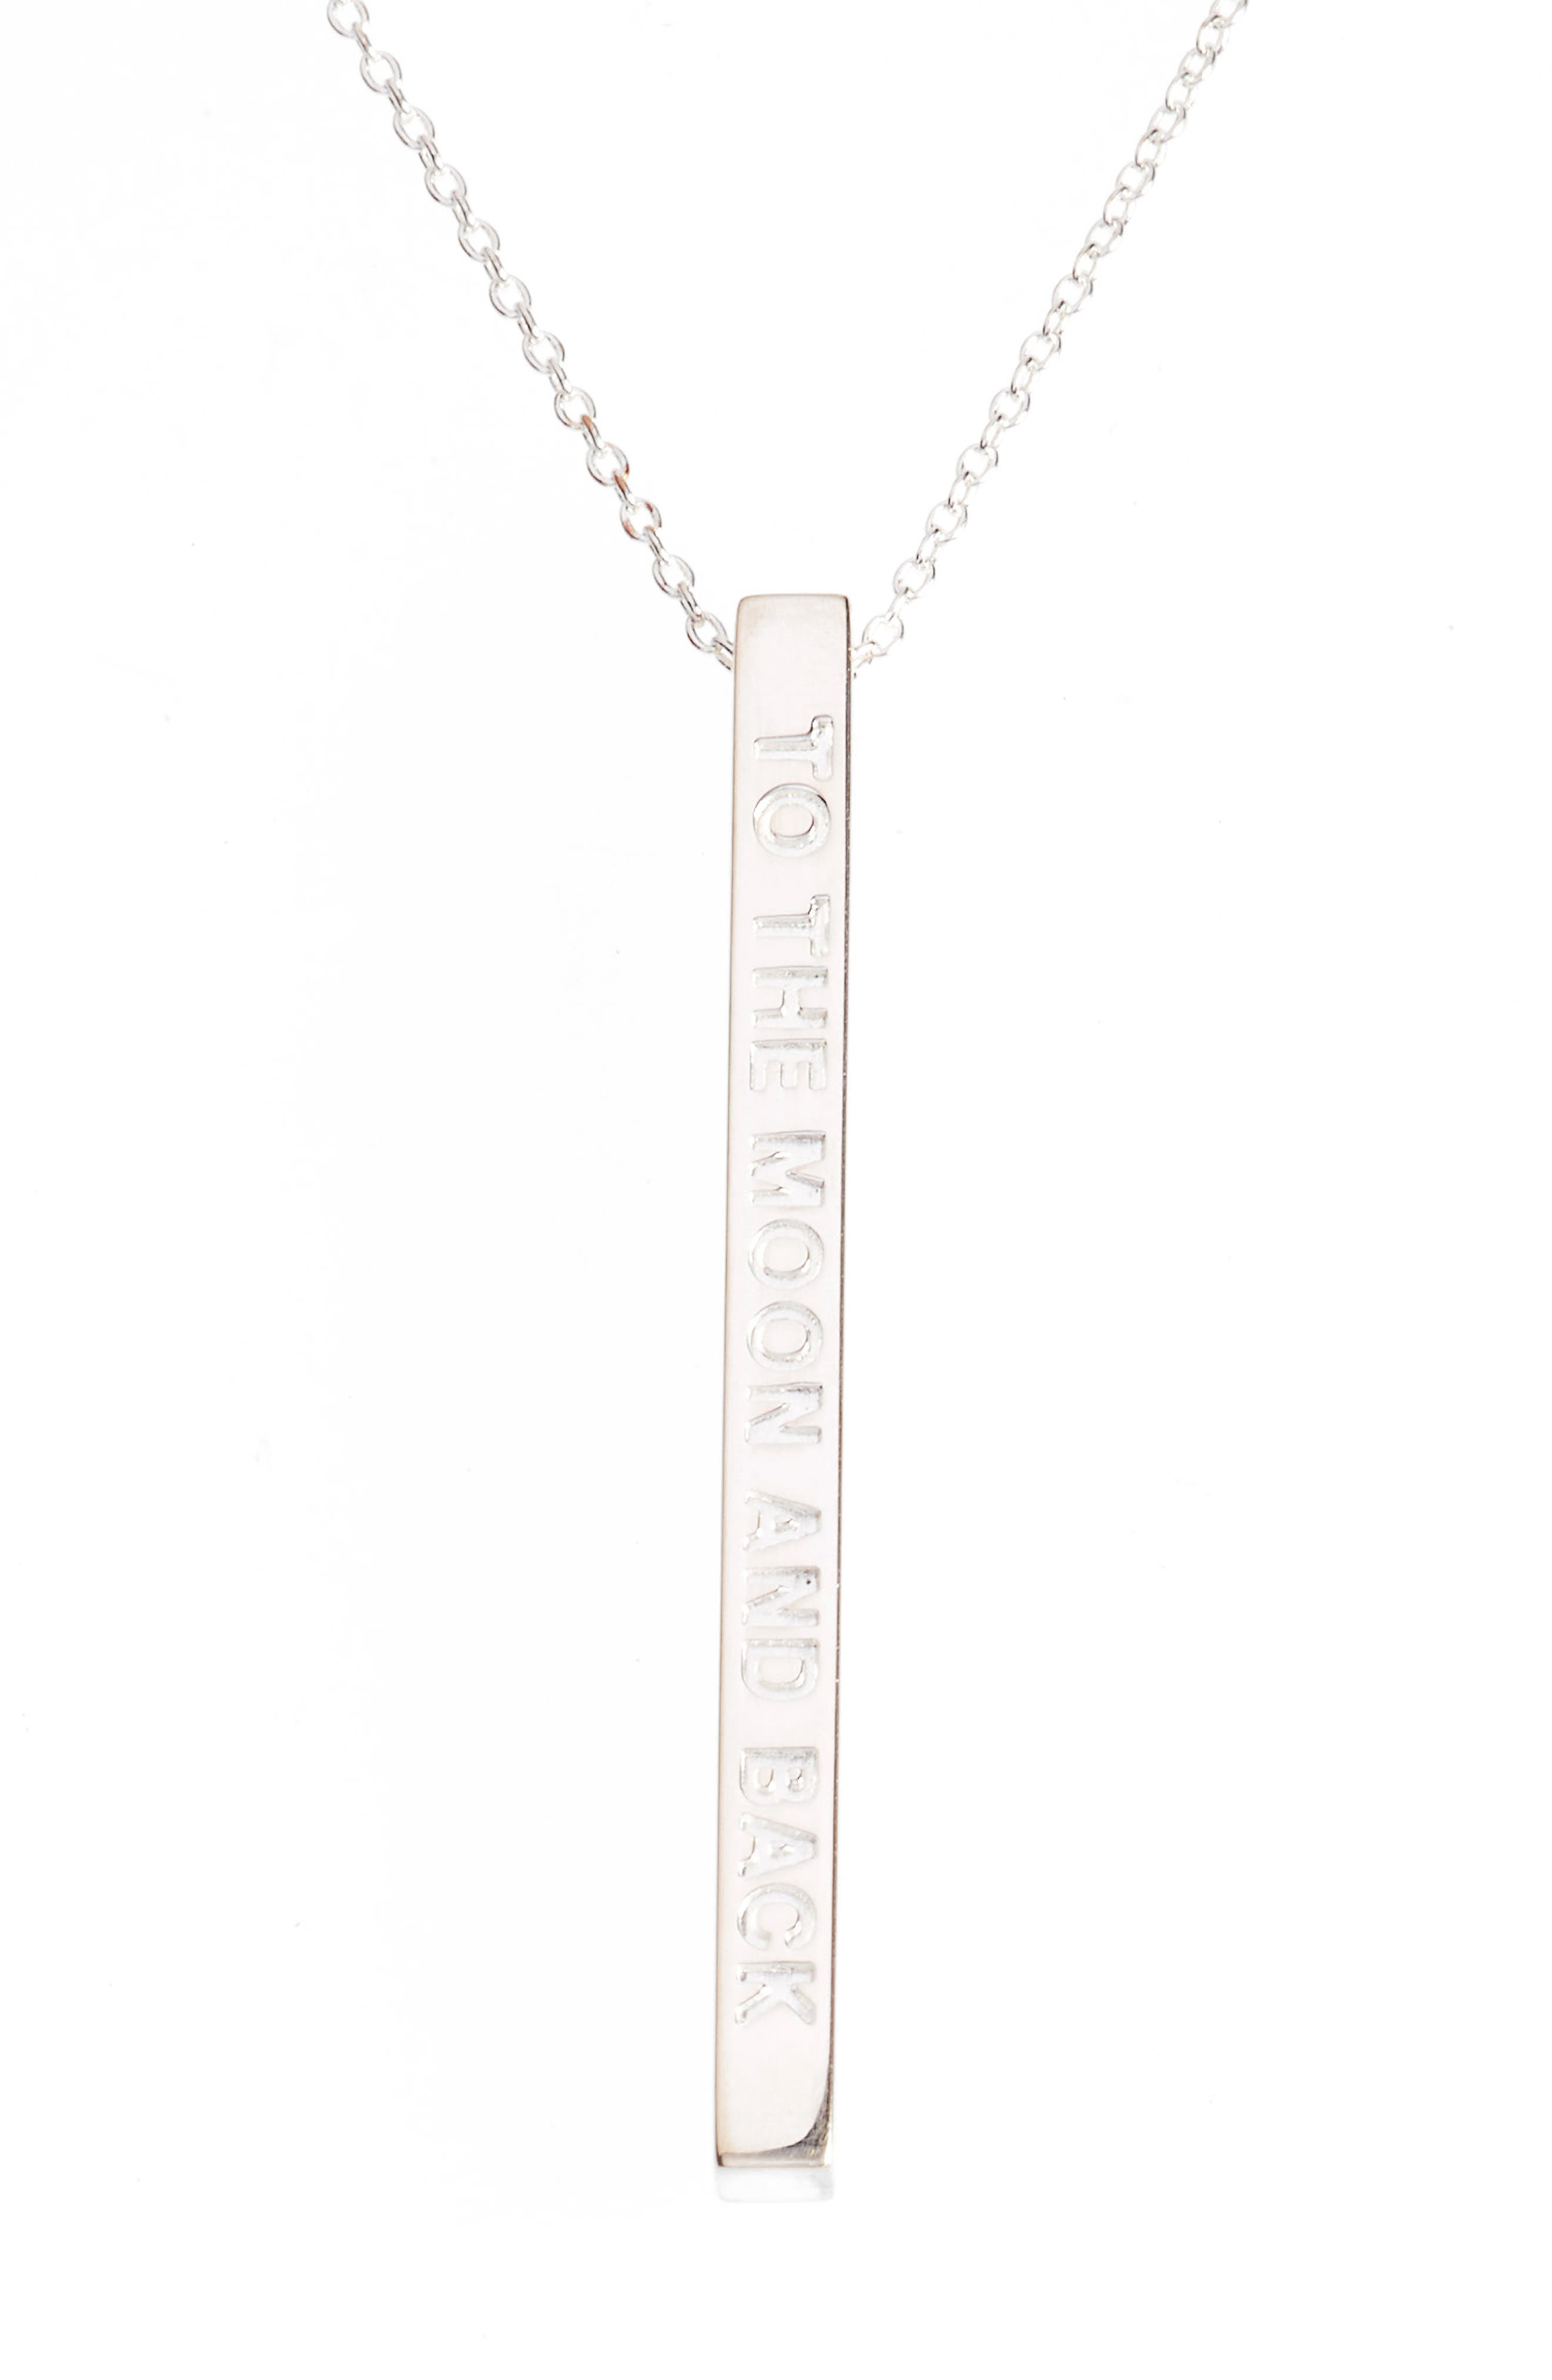 MANTRABAND To the Moon & Back Pendant Necklace